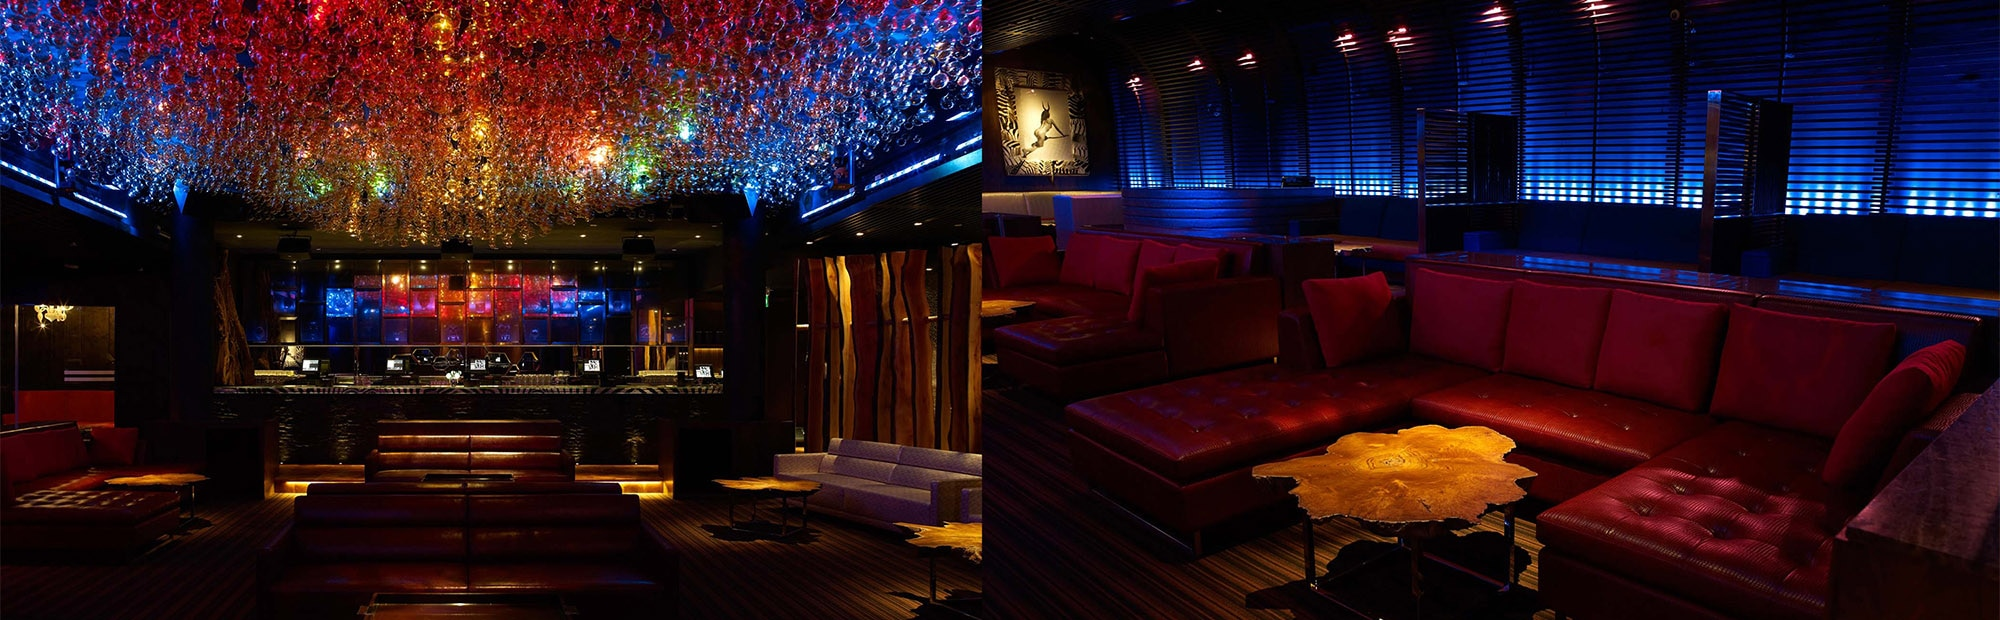 Pangaea Nightclub at Marina Bay Sands